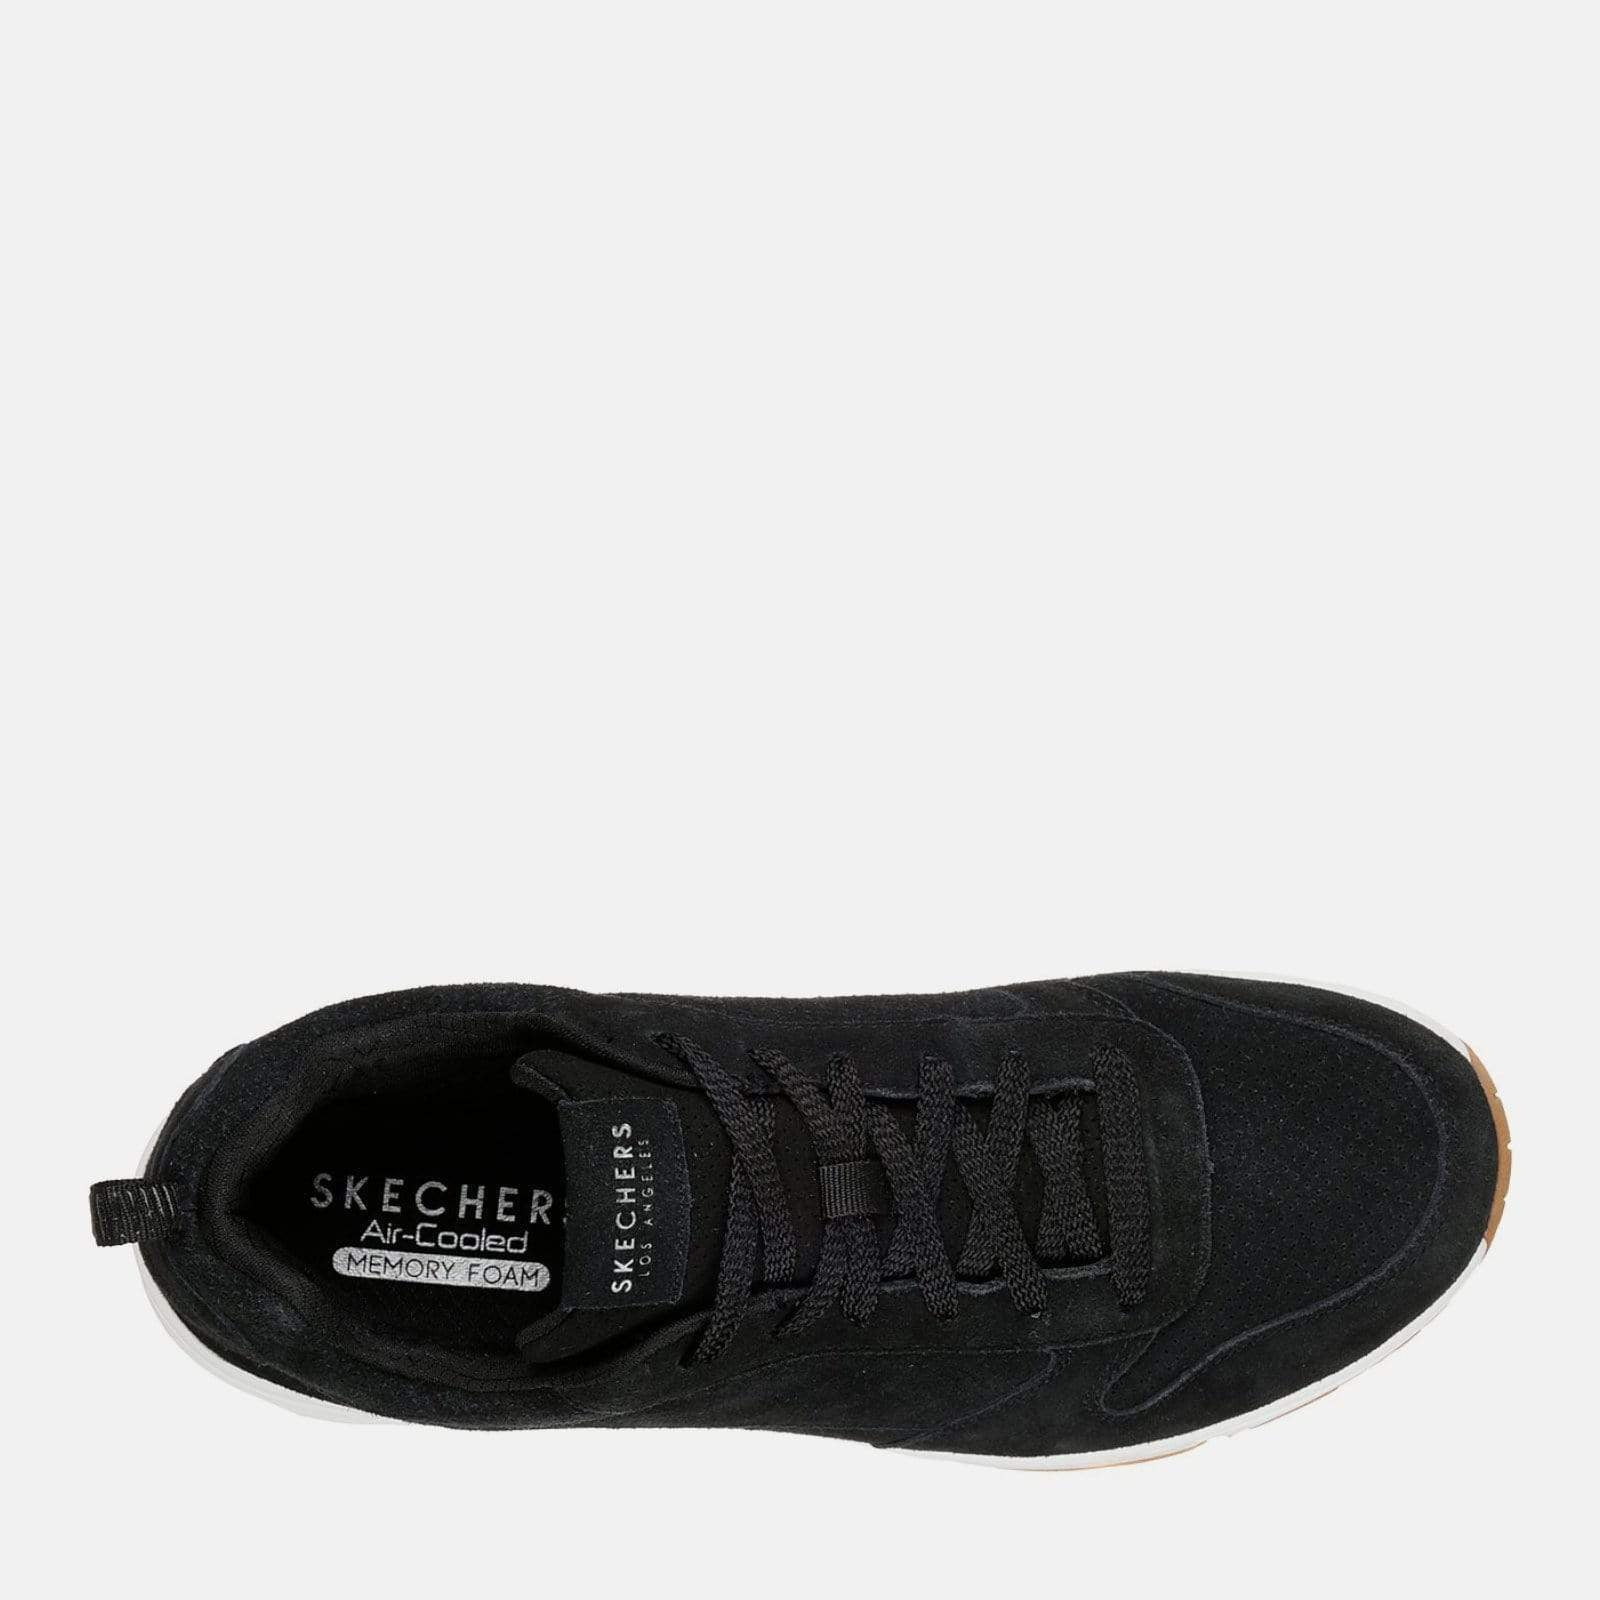 Skechers Footwear Uno 52456 Black